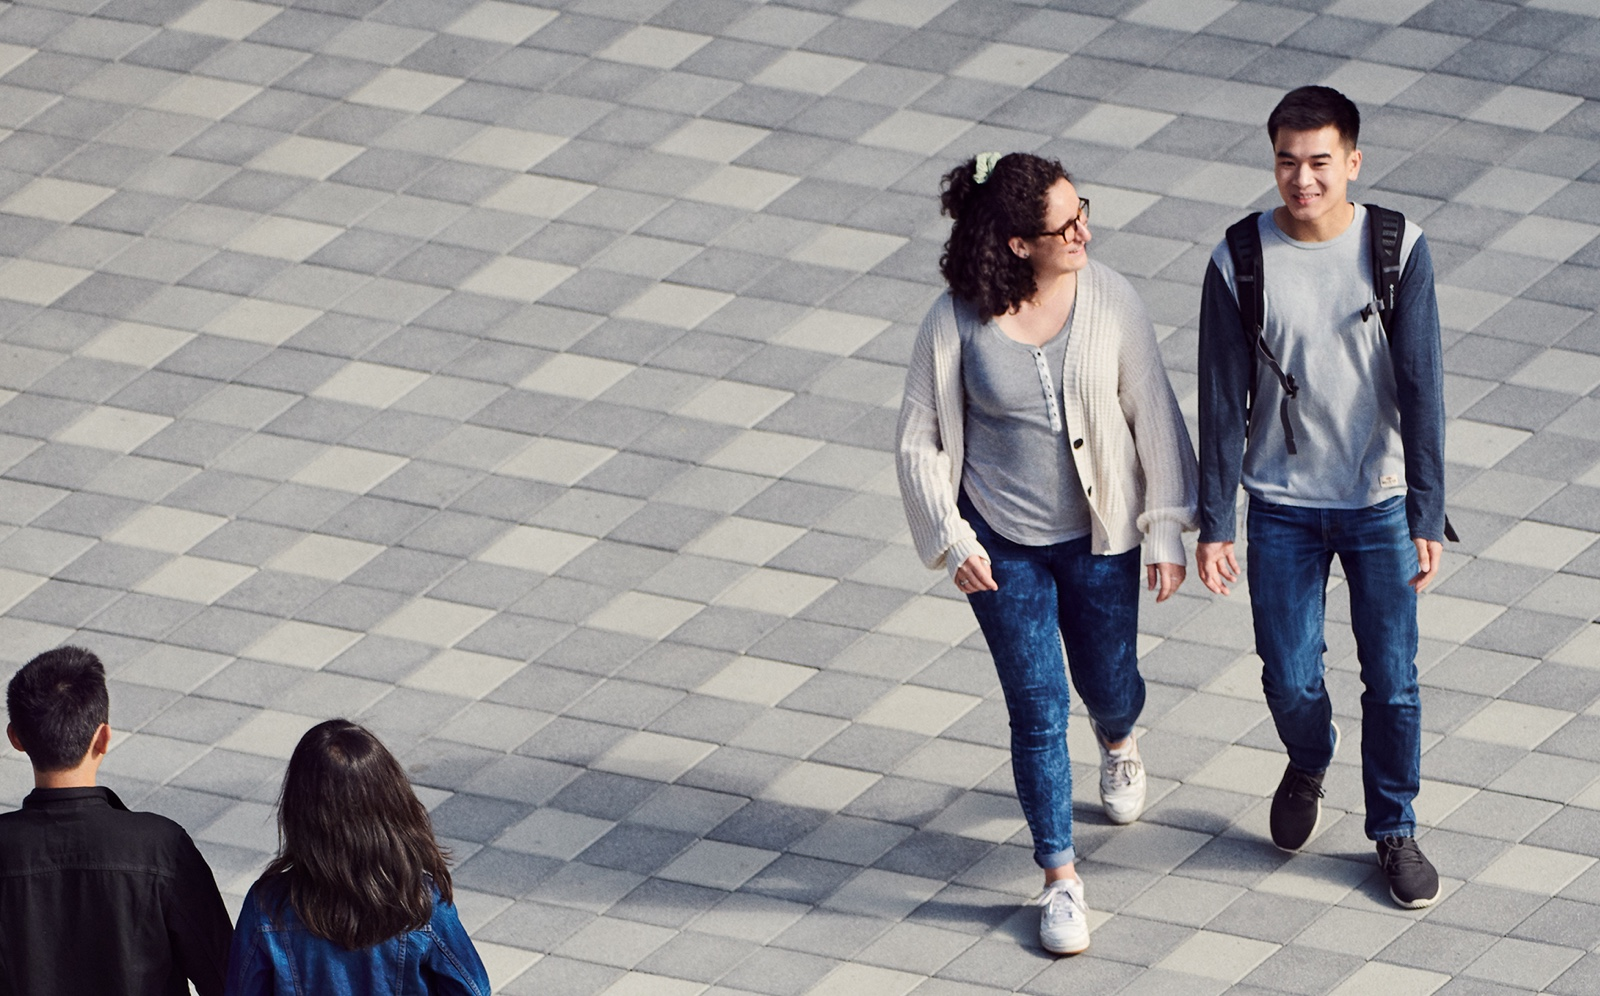 Apple employees walk across a courtyard on an Apple campus while talking.